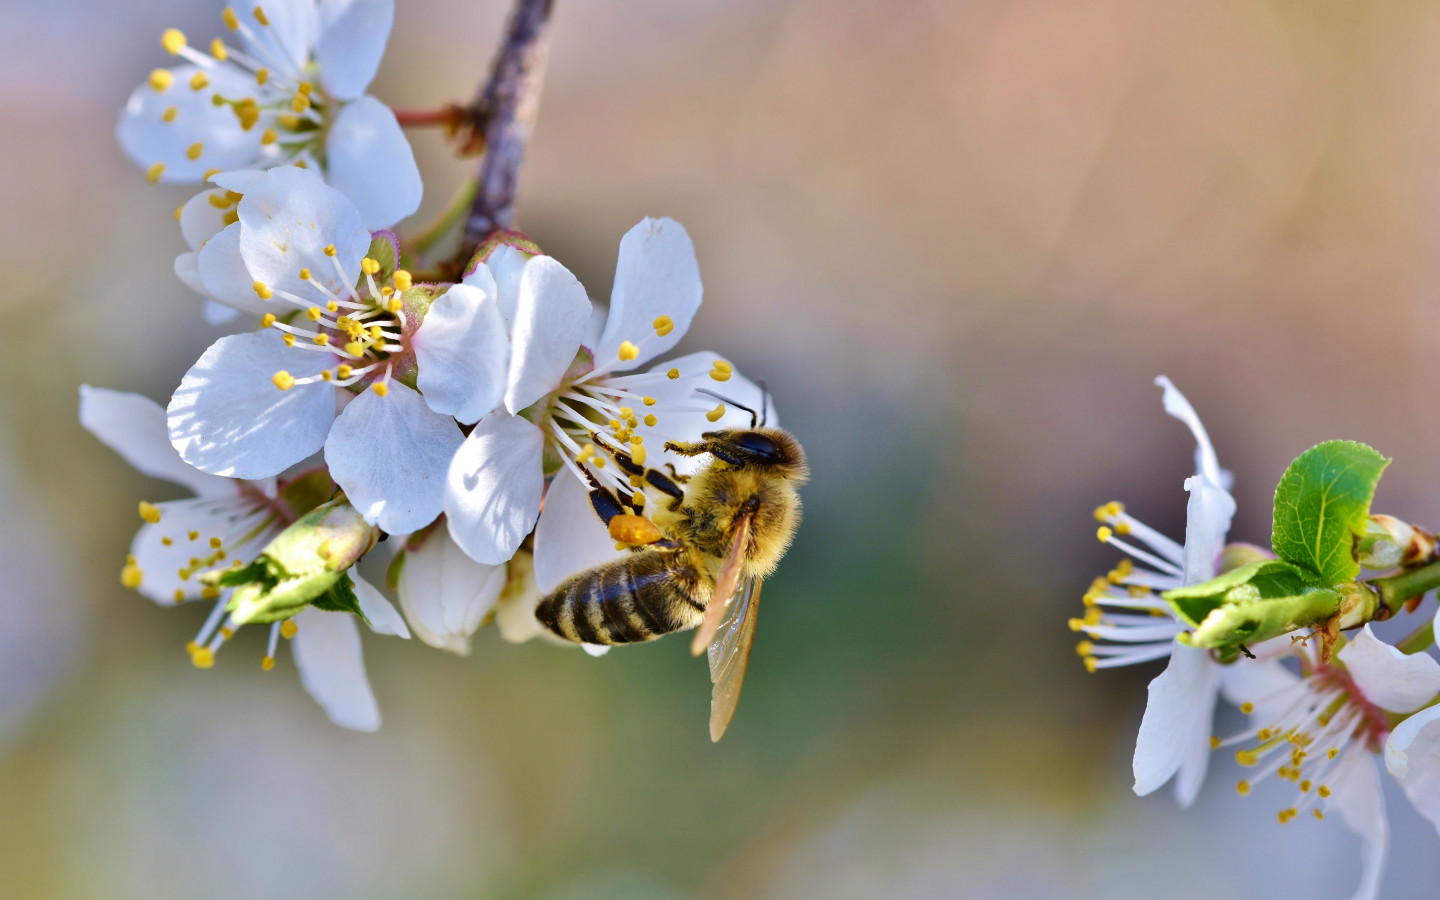 Spring, bee, blossoms, flower wallpaper 1440x900